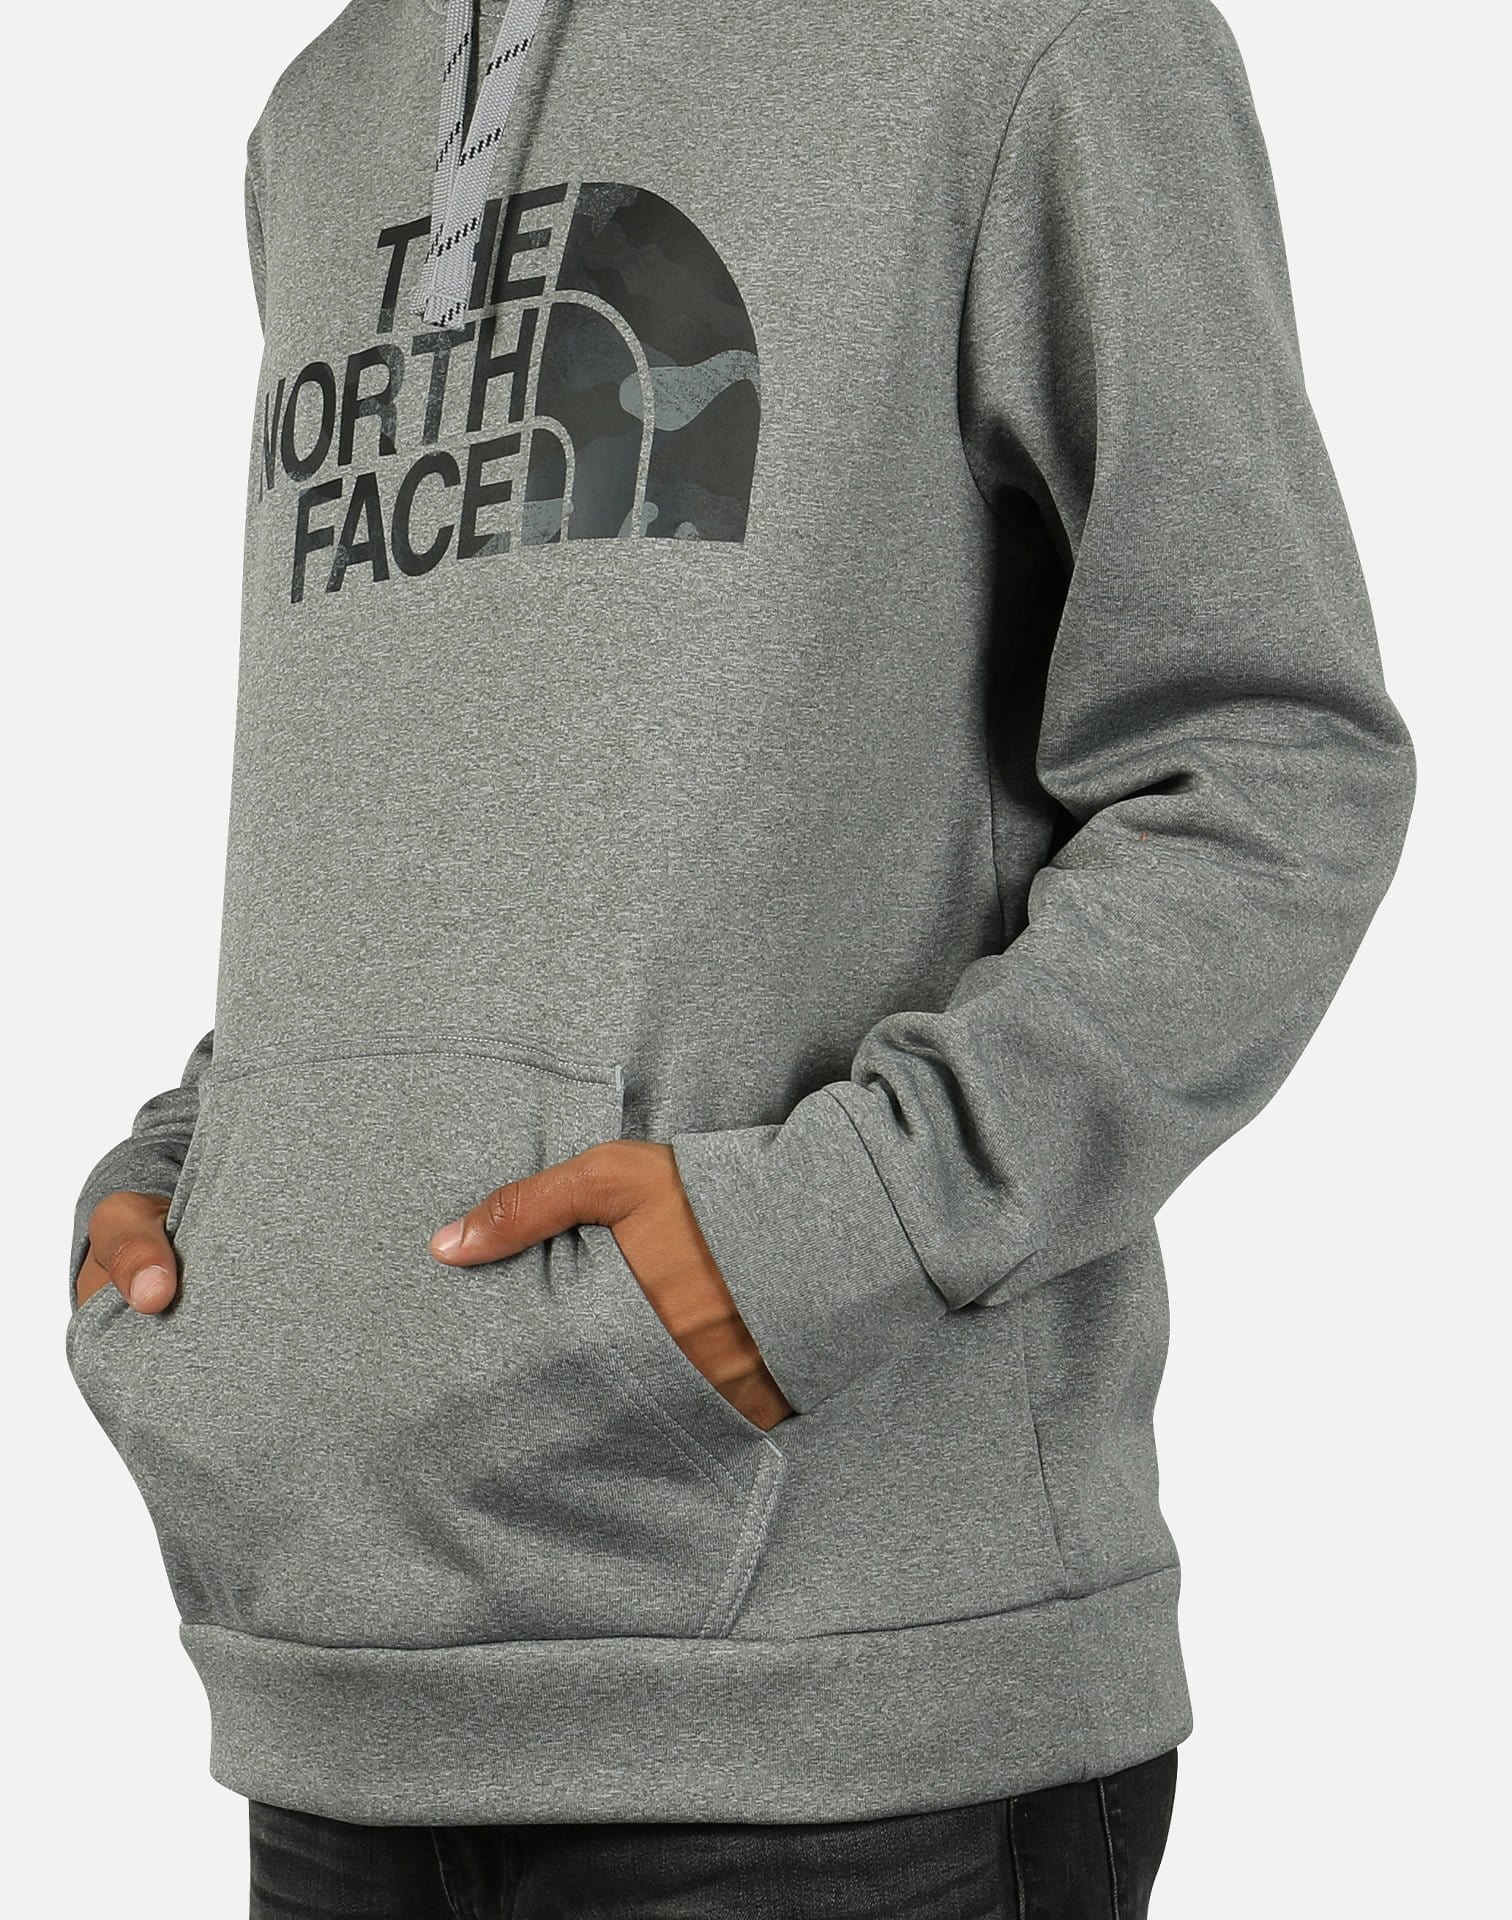 The North Face Men's Surgent Half Dome Pullover Hoodie 2.0